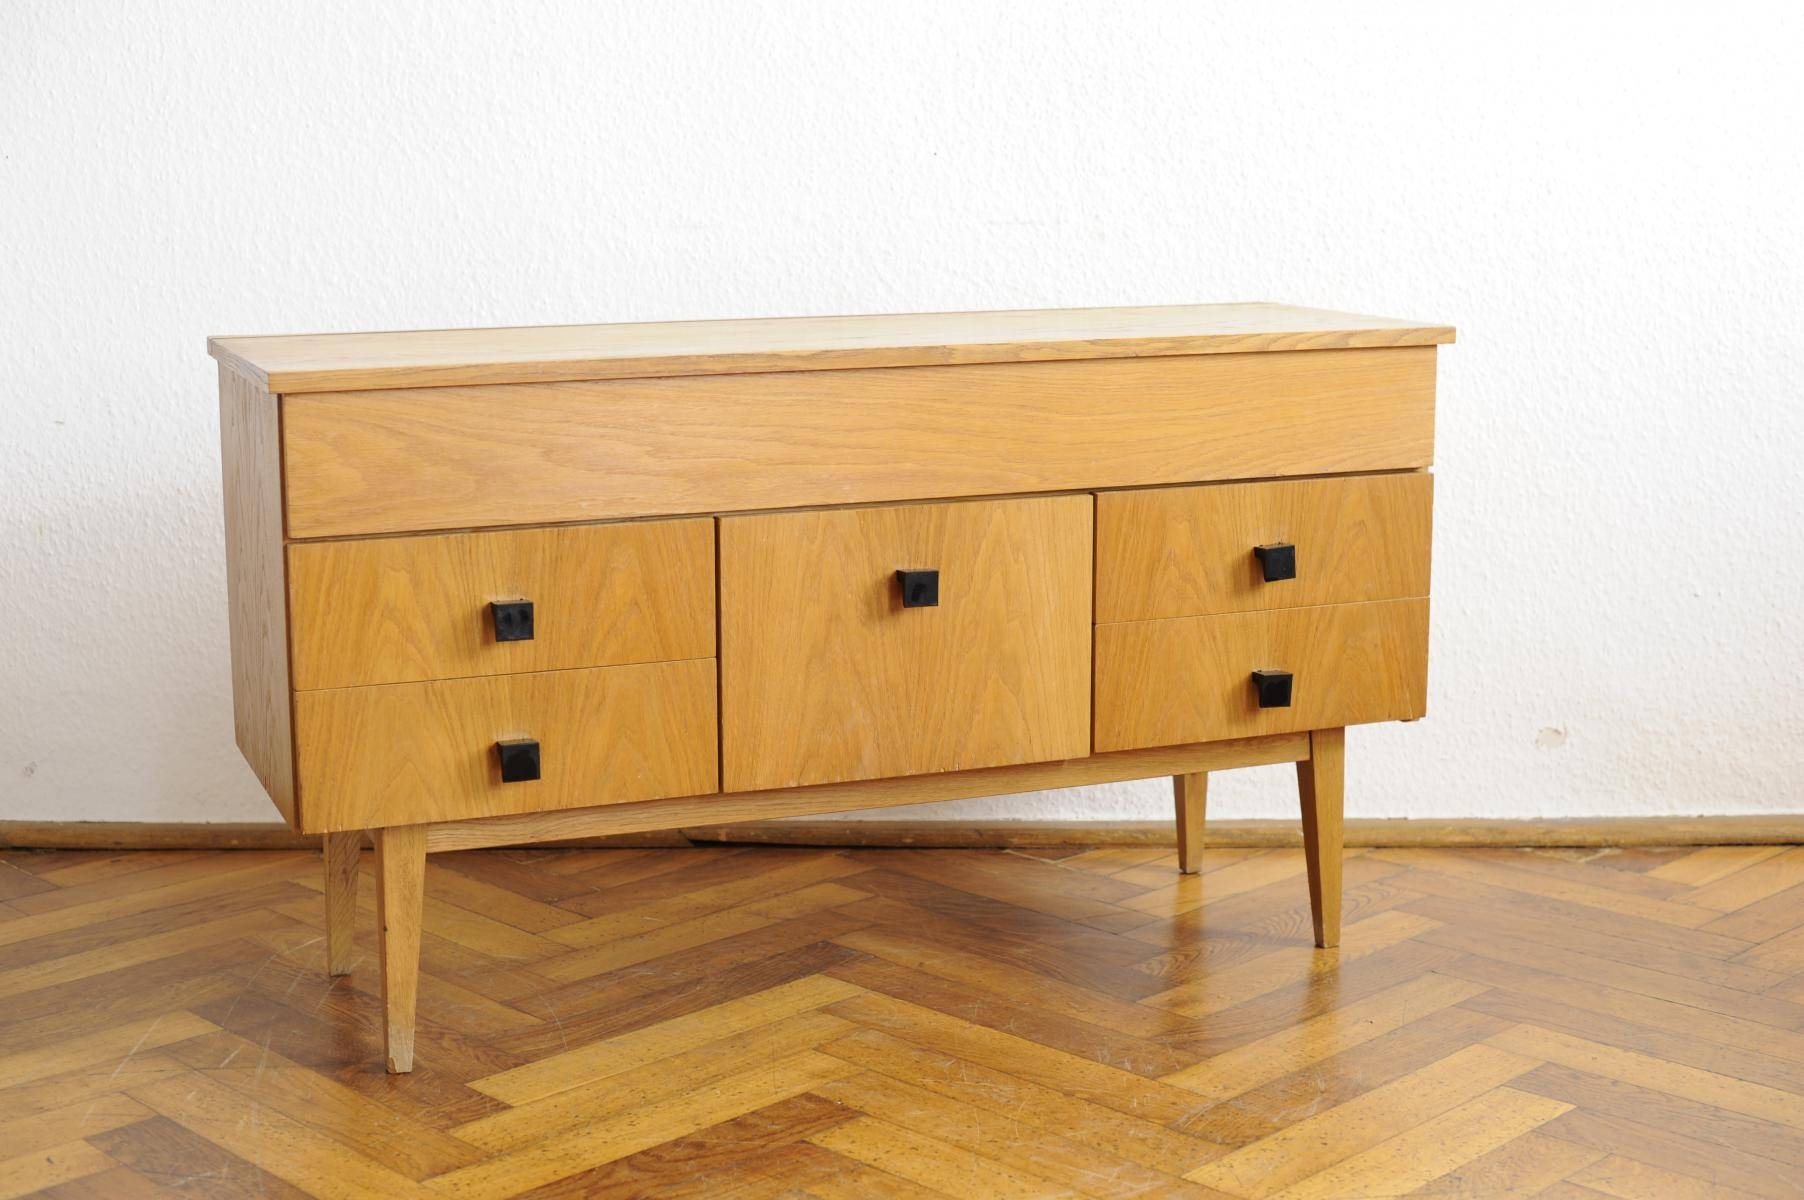 Vintage Modernist Sideboard With Beech Veneer For Sale At Pamono intended for Beech Sideboards (Image 28 of 30)